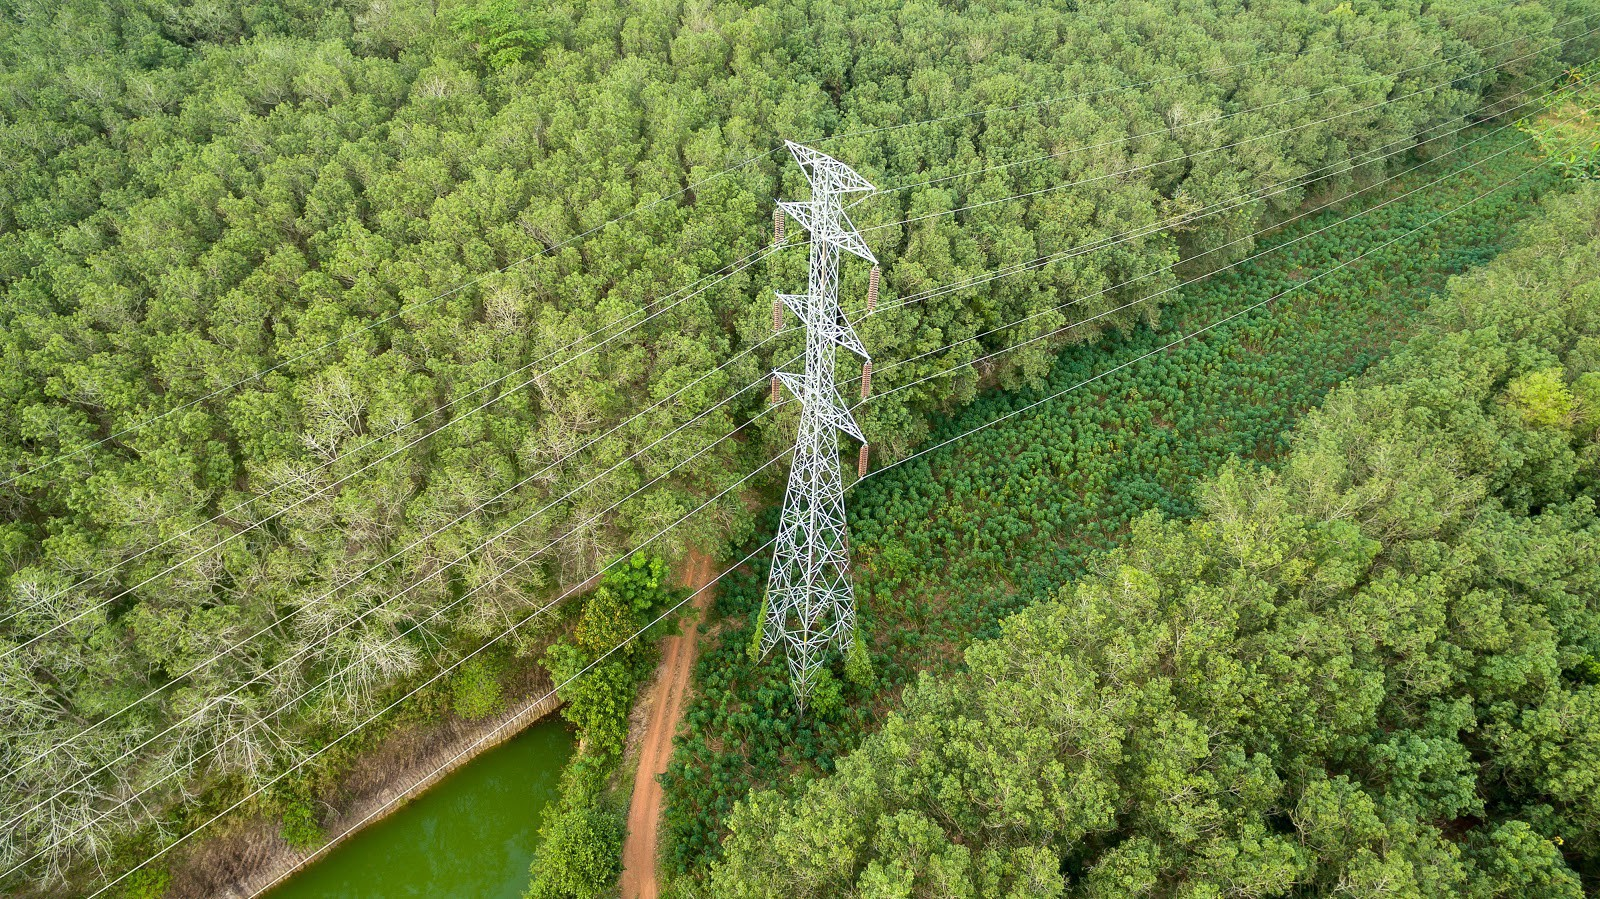 Transmission tower in forest area